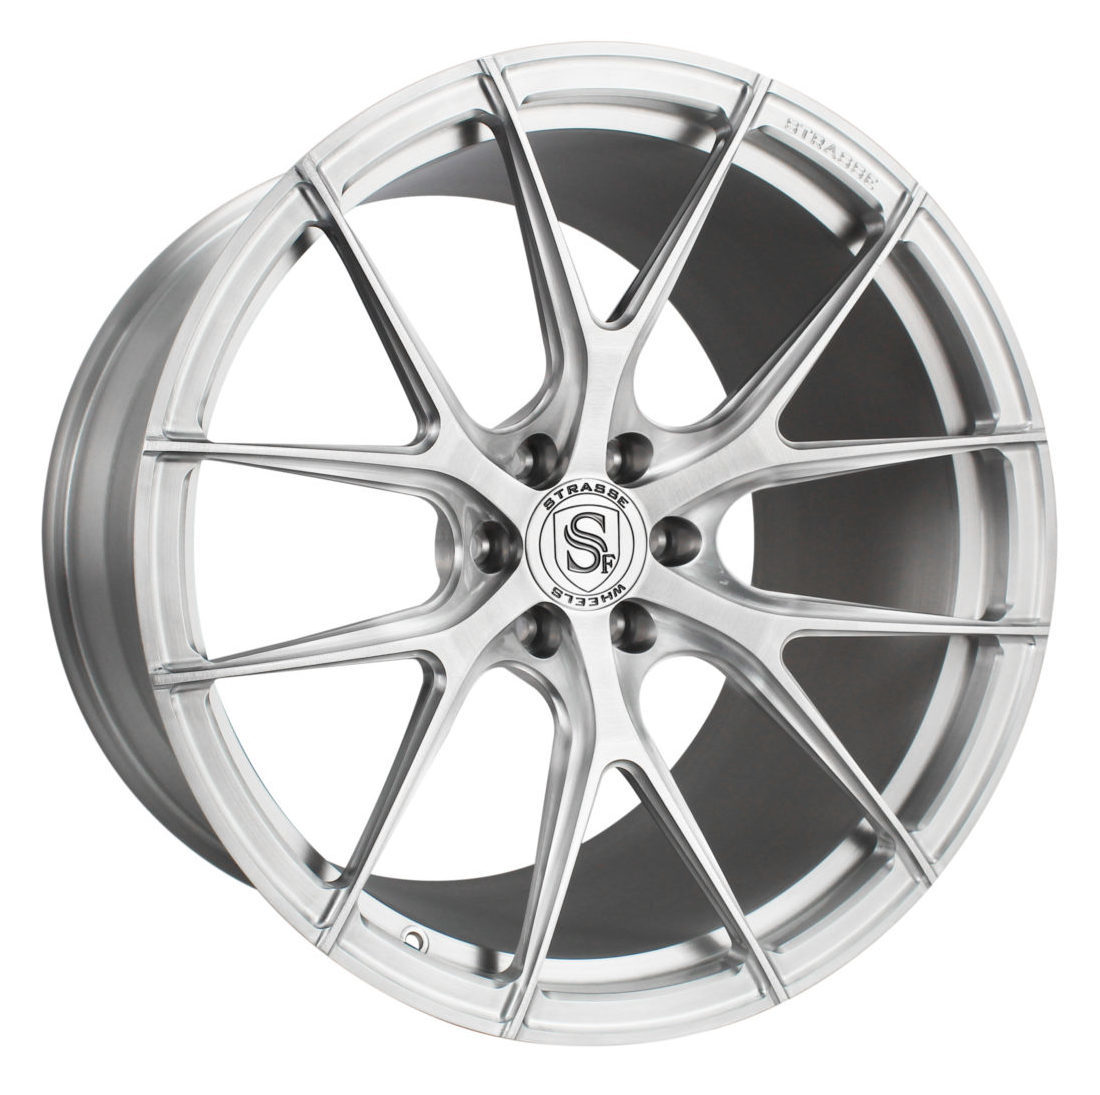 Strasse SM6R DEEP CONCAVE MONOBLOCK Forged Wheels